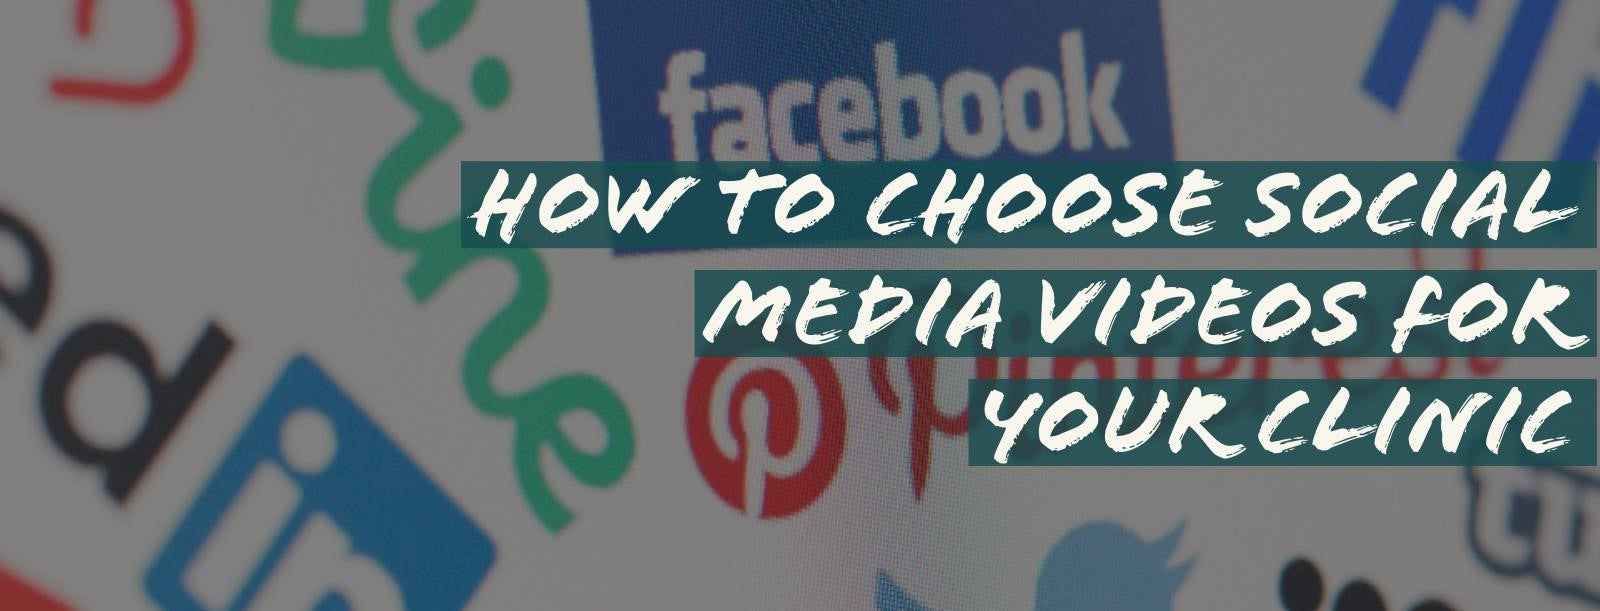 How to Choose Social Media Videos for Your Clinic